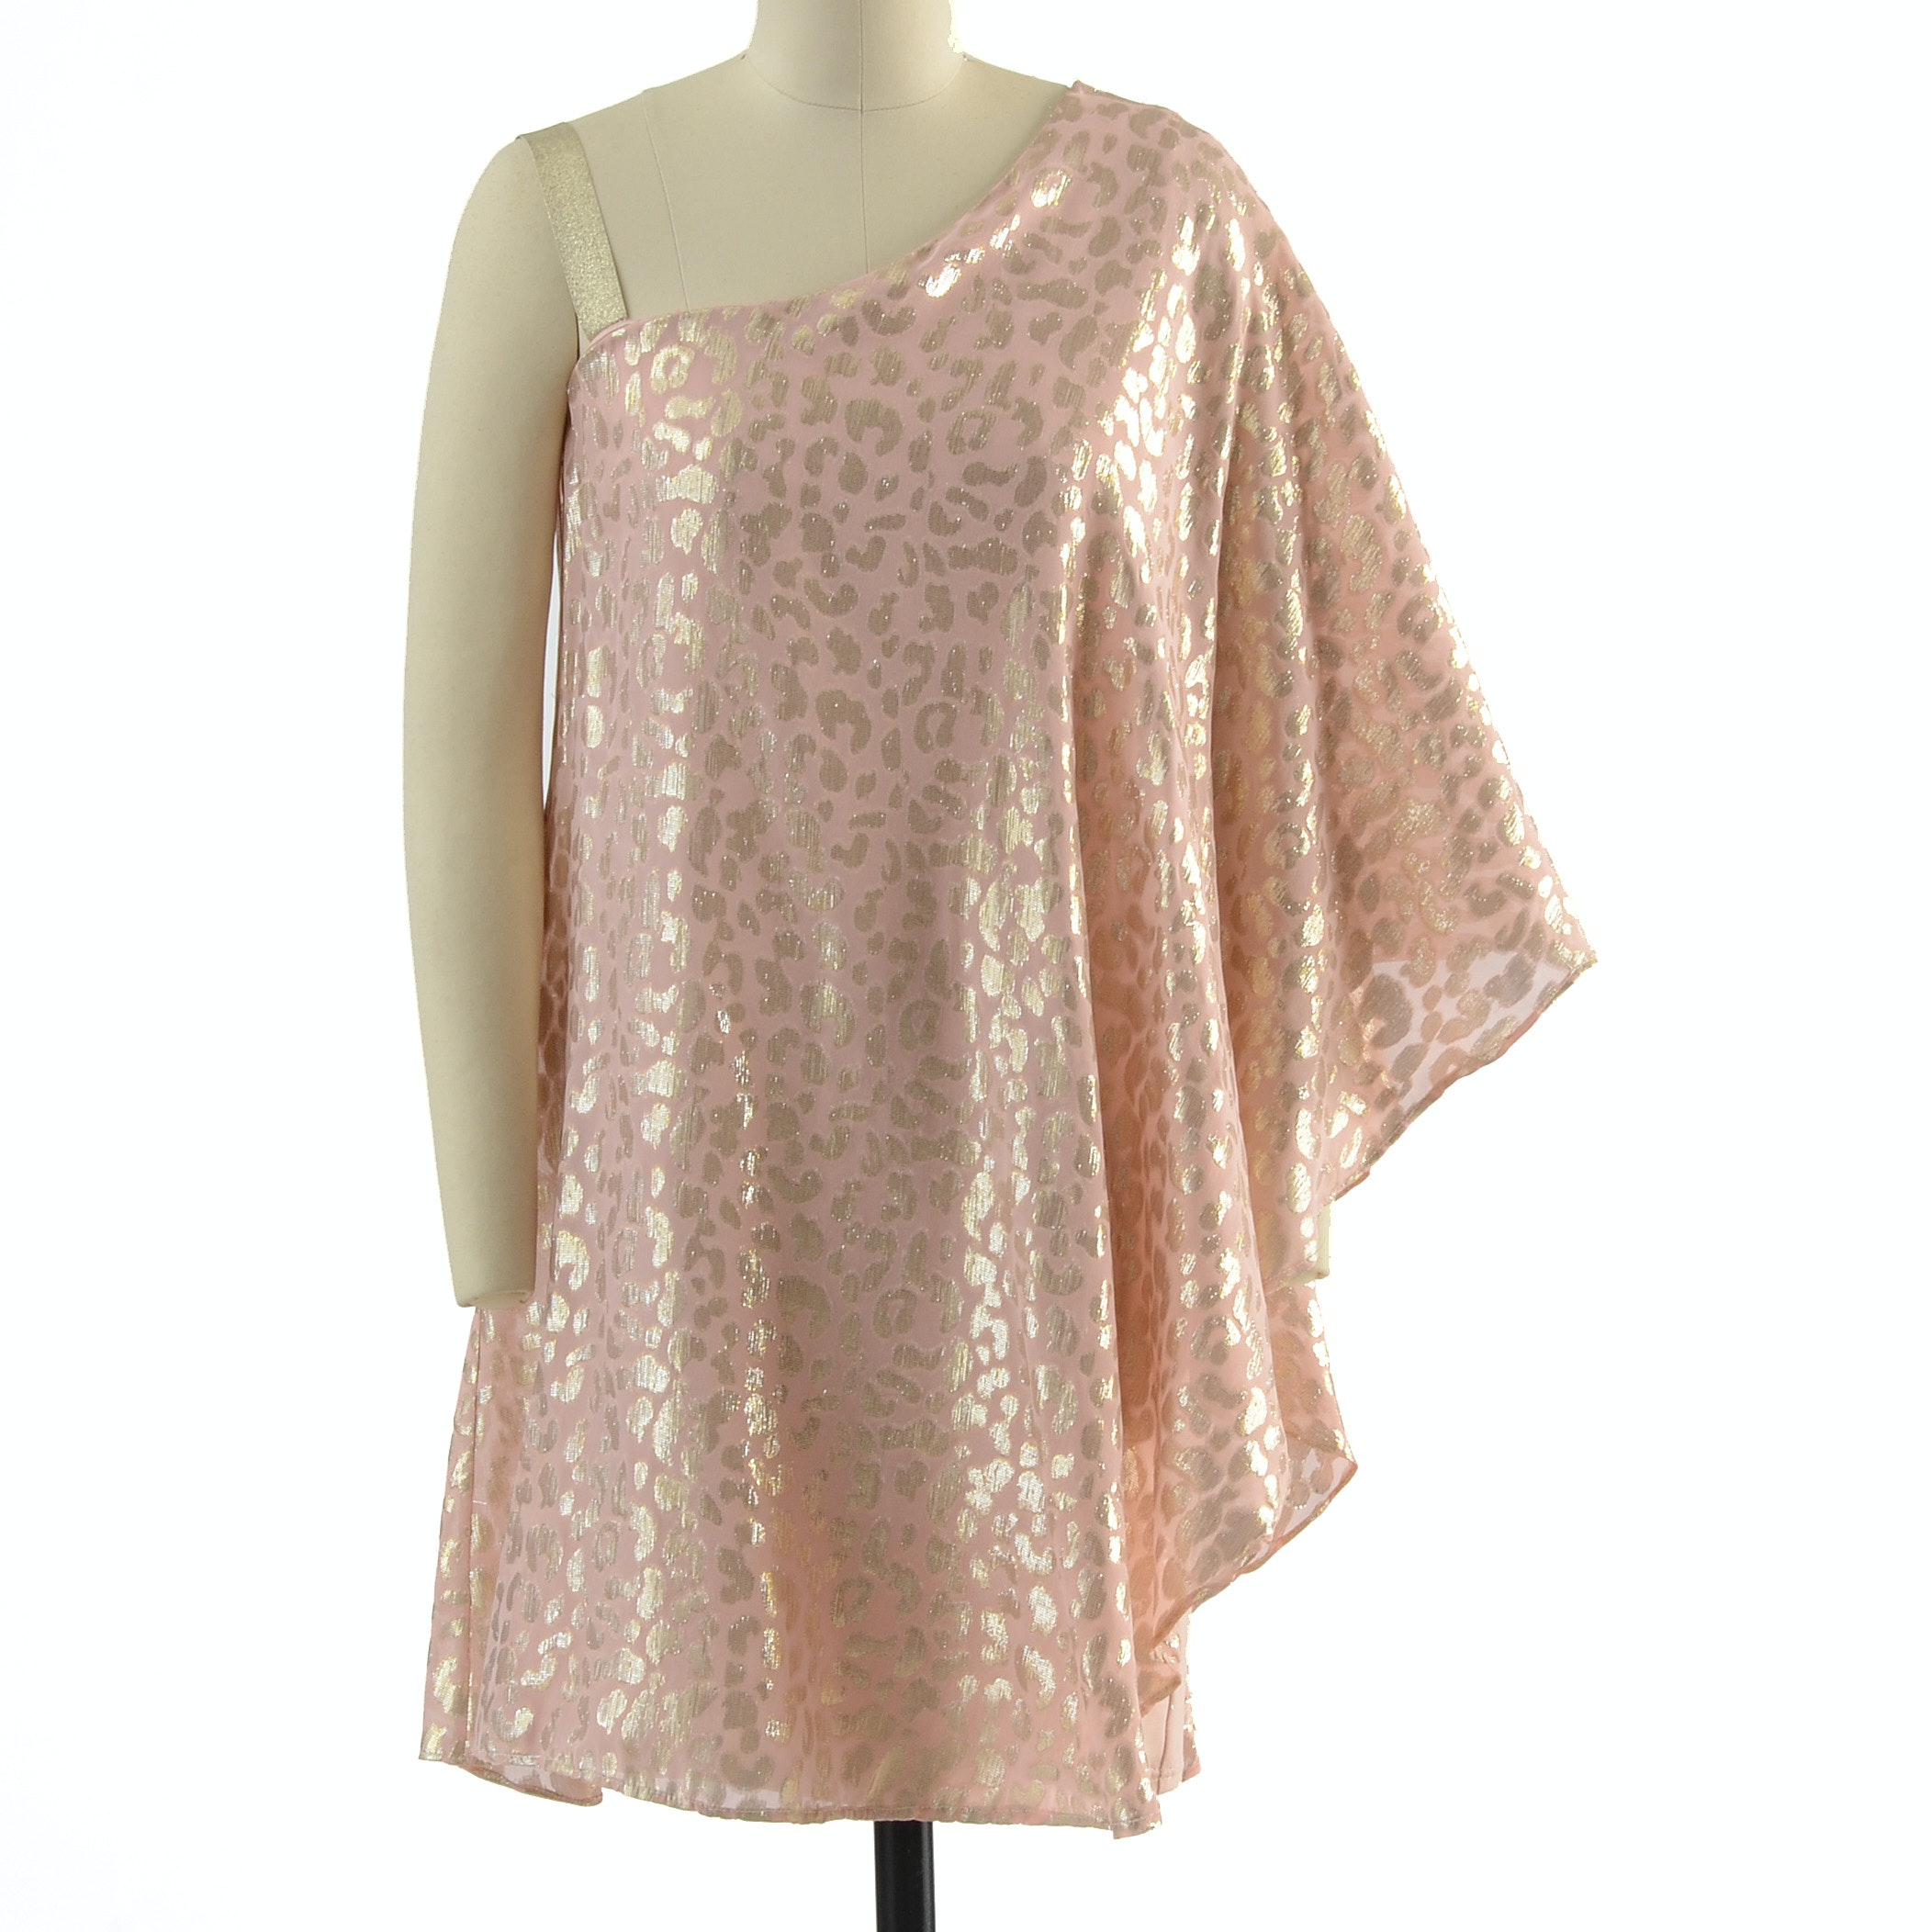 ERIN by Erin Fetherston One-Shoulder Cheetah Print Mini Dress in Blush and Gold Metallic